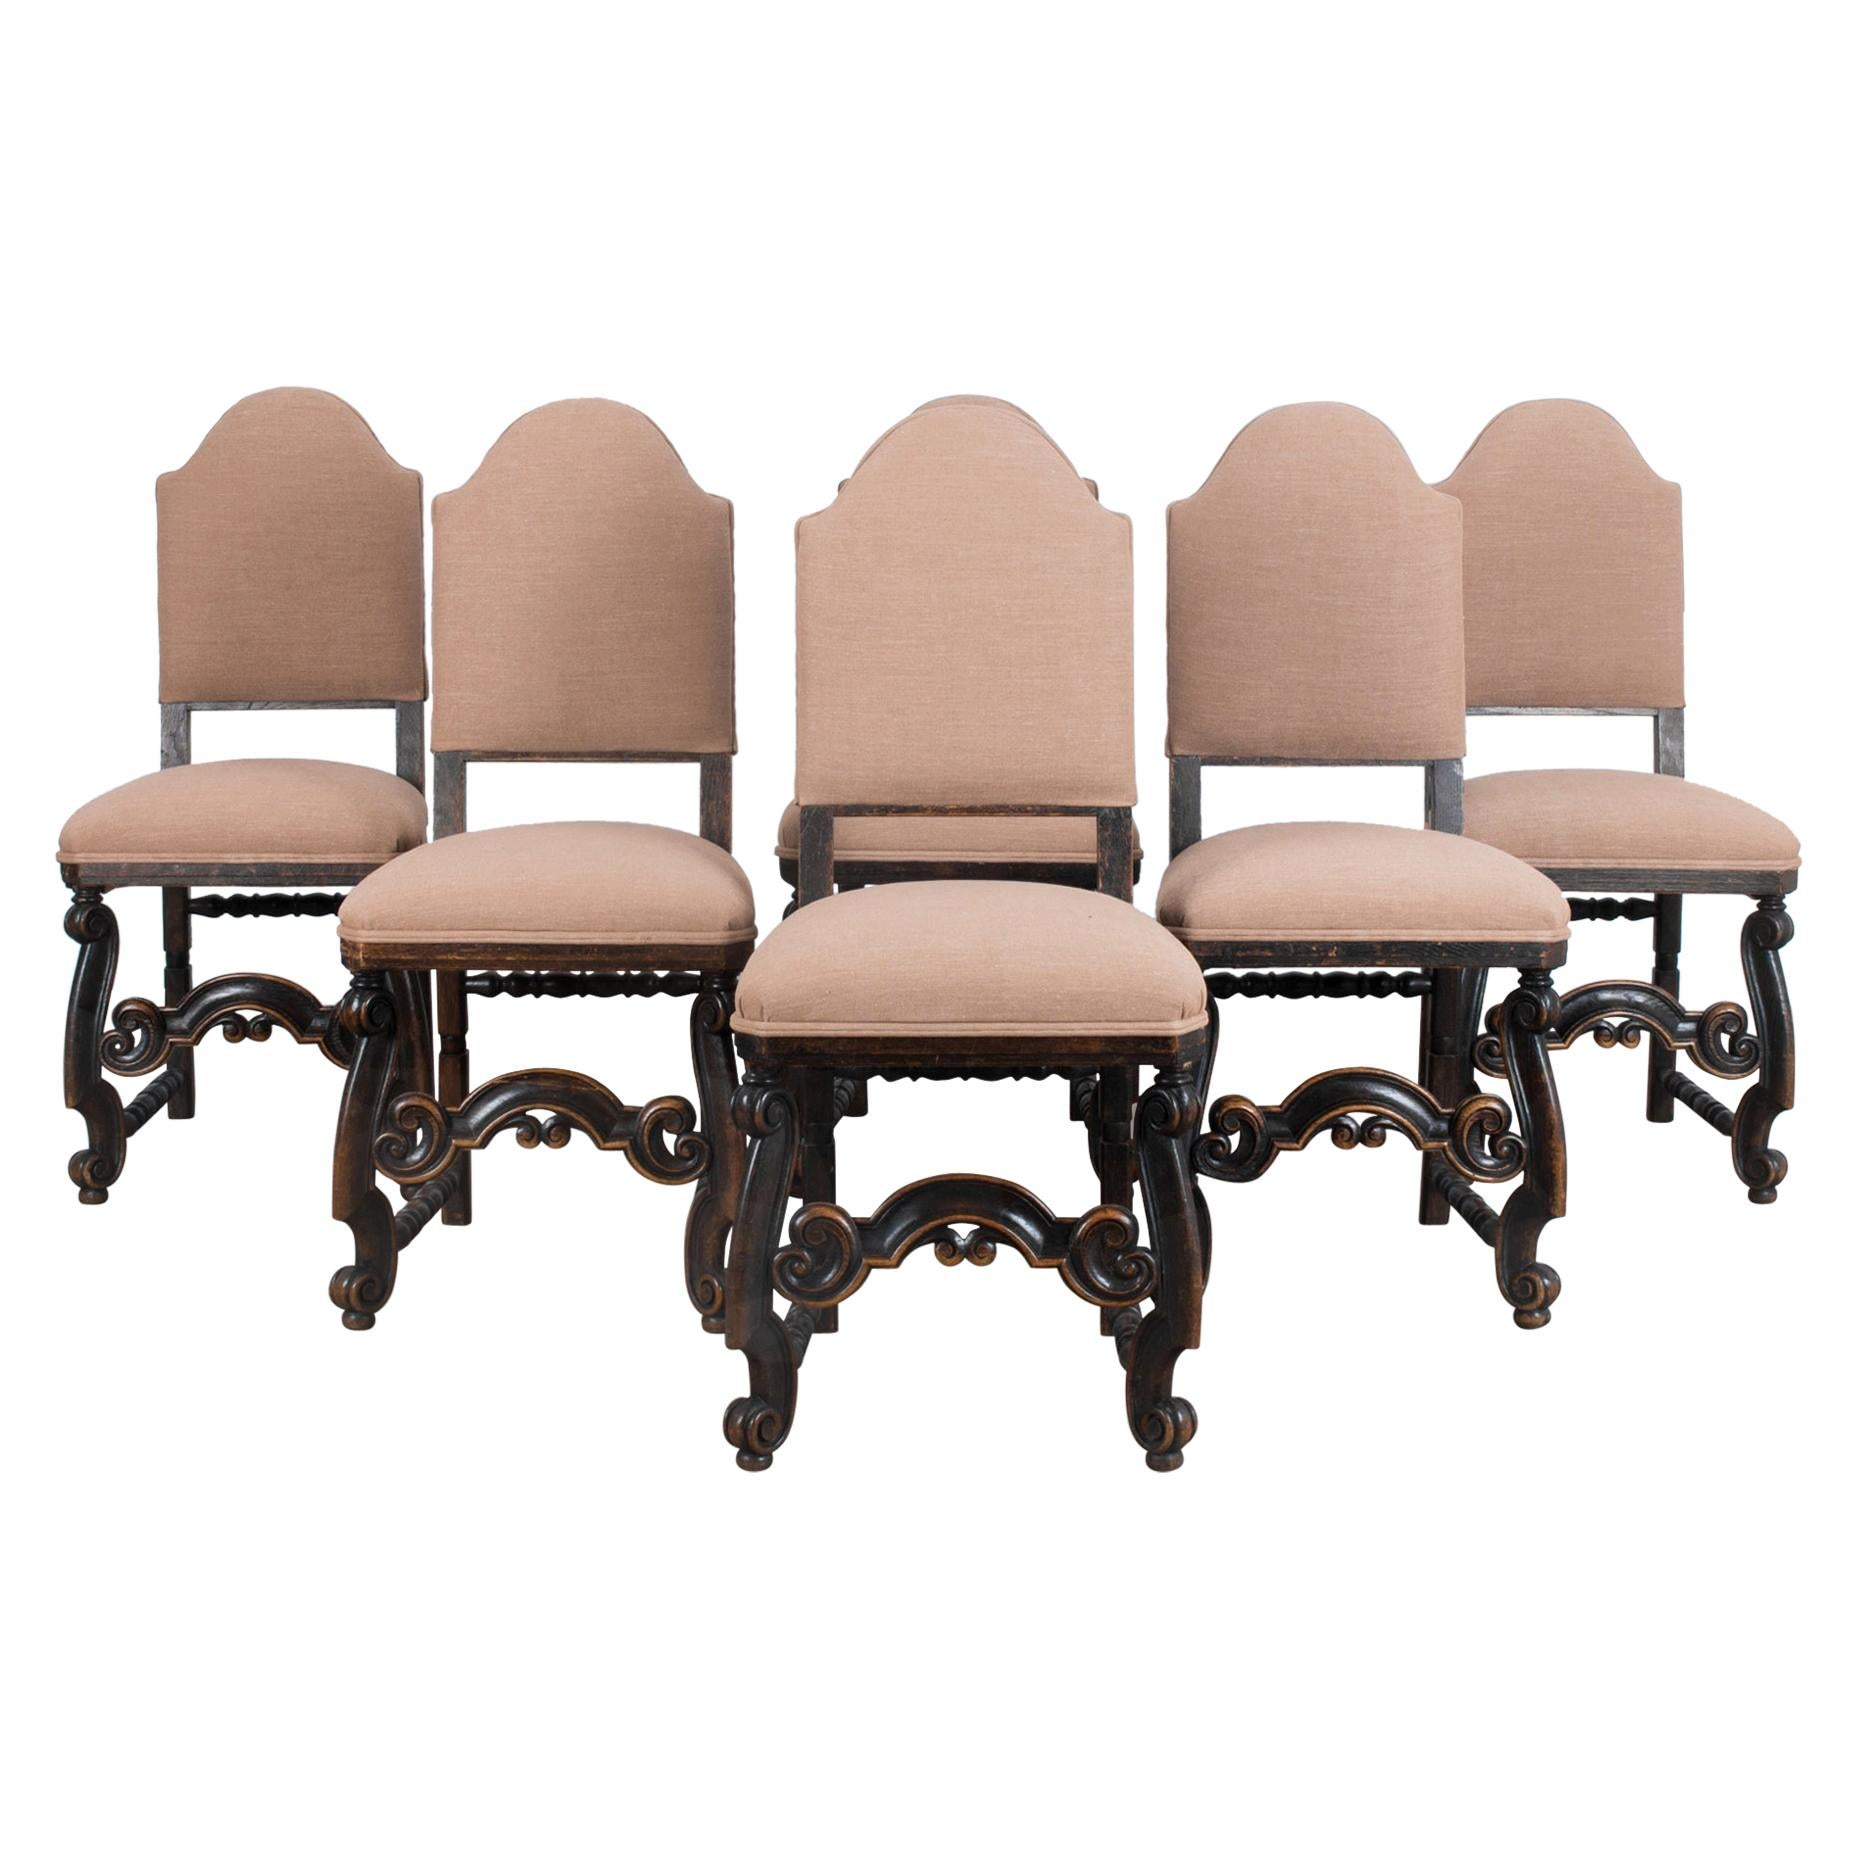 Turn of the Century French Wooden Dining Chairs, Set of Six